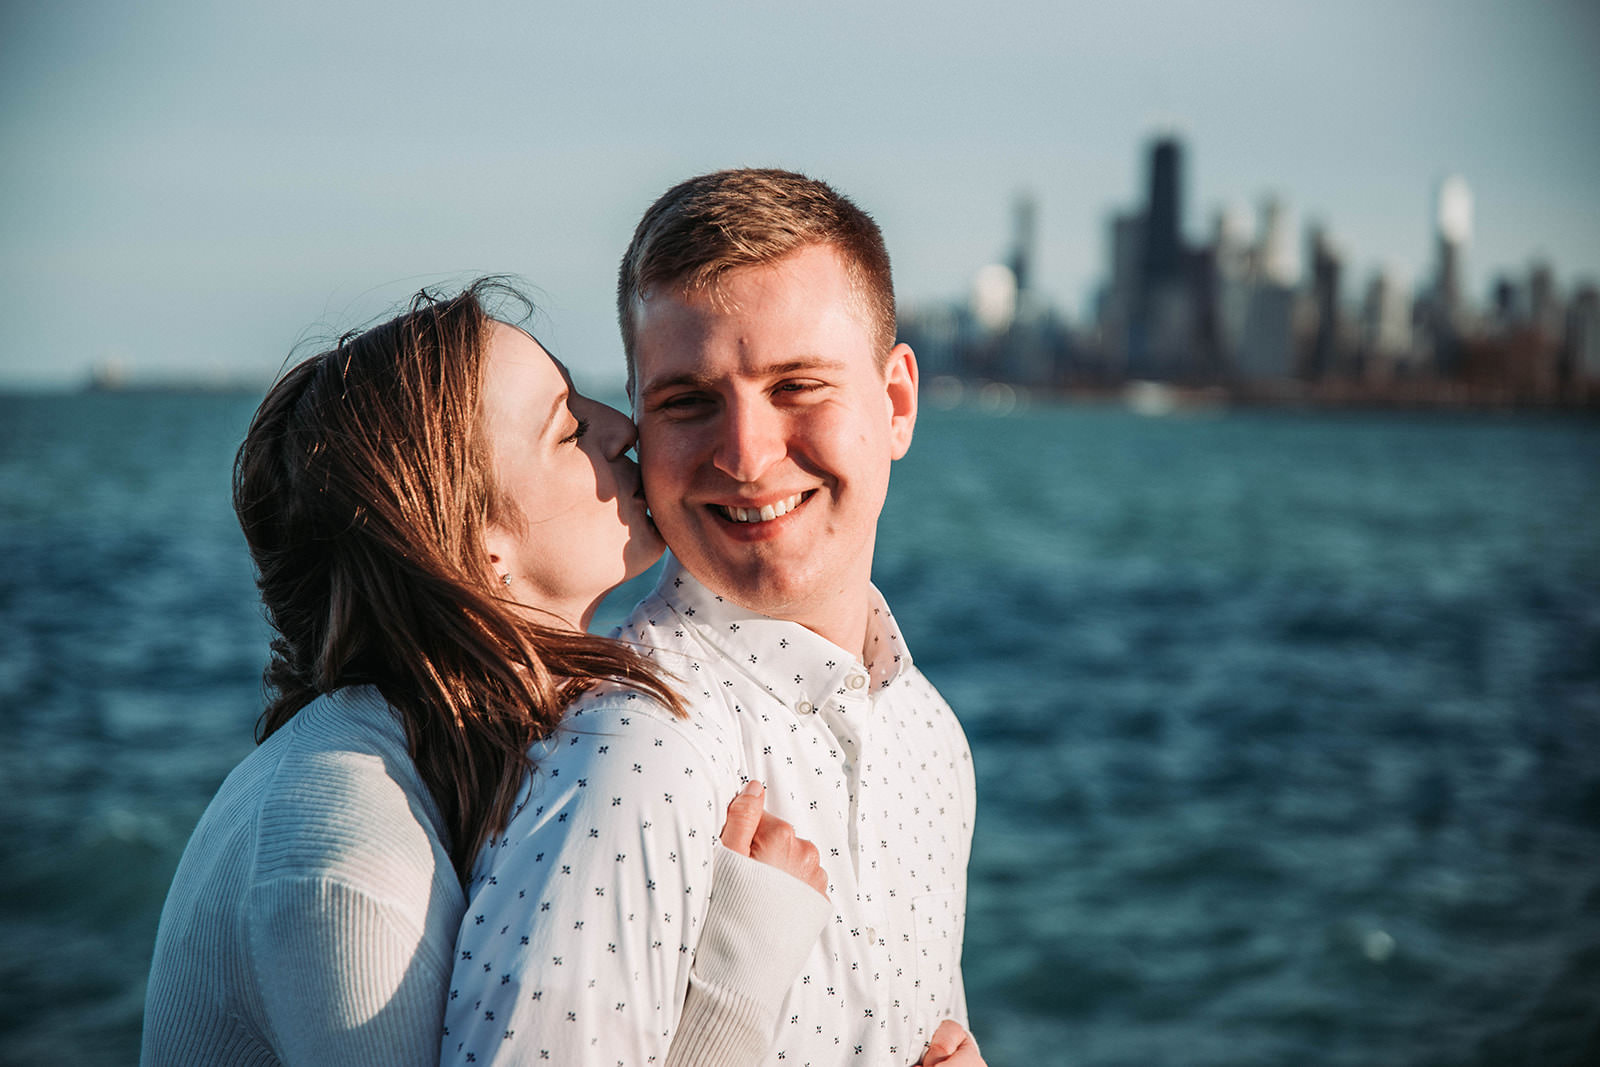 Downtown_chicago_spring_engagement_session-25.jpg